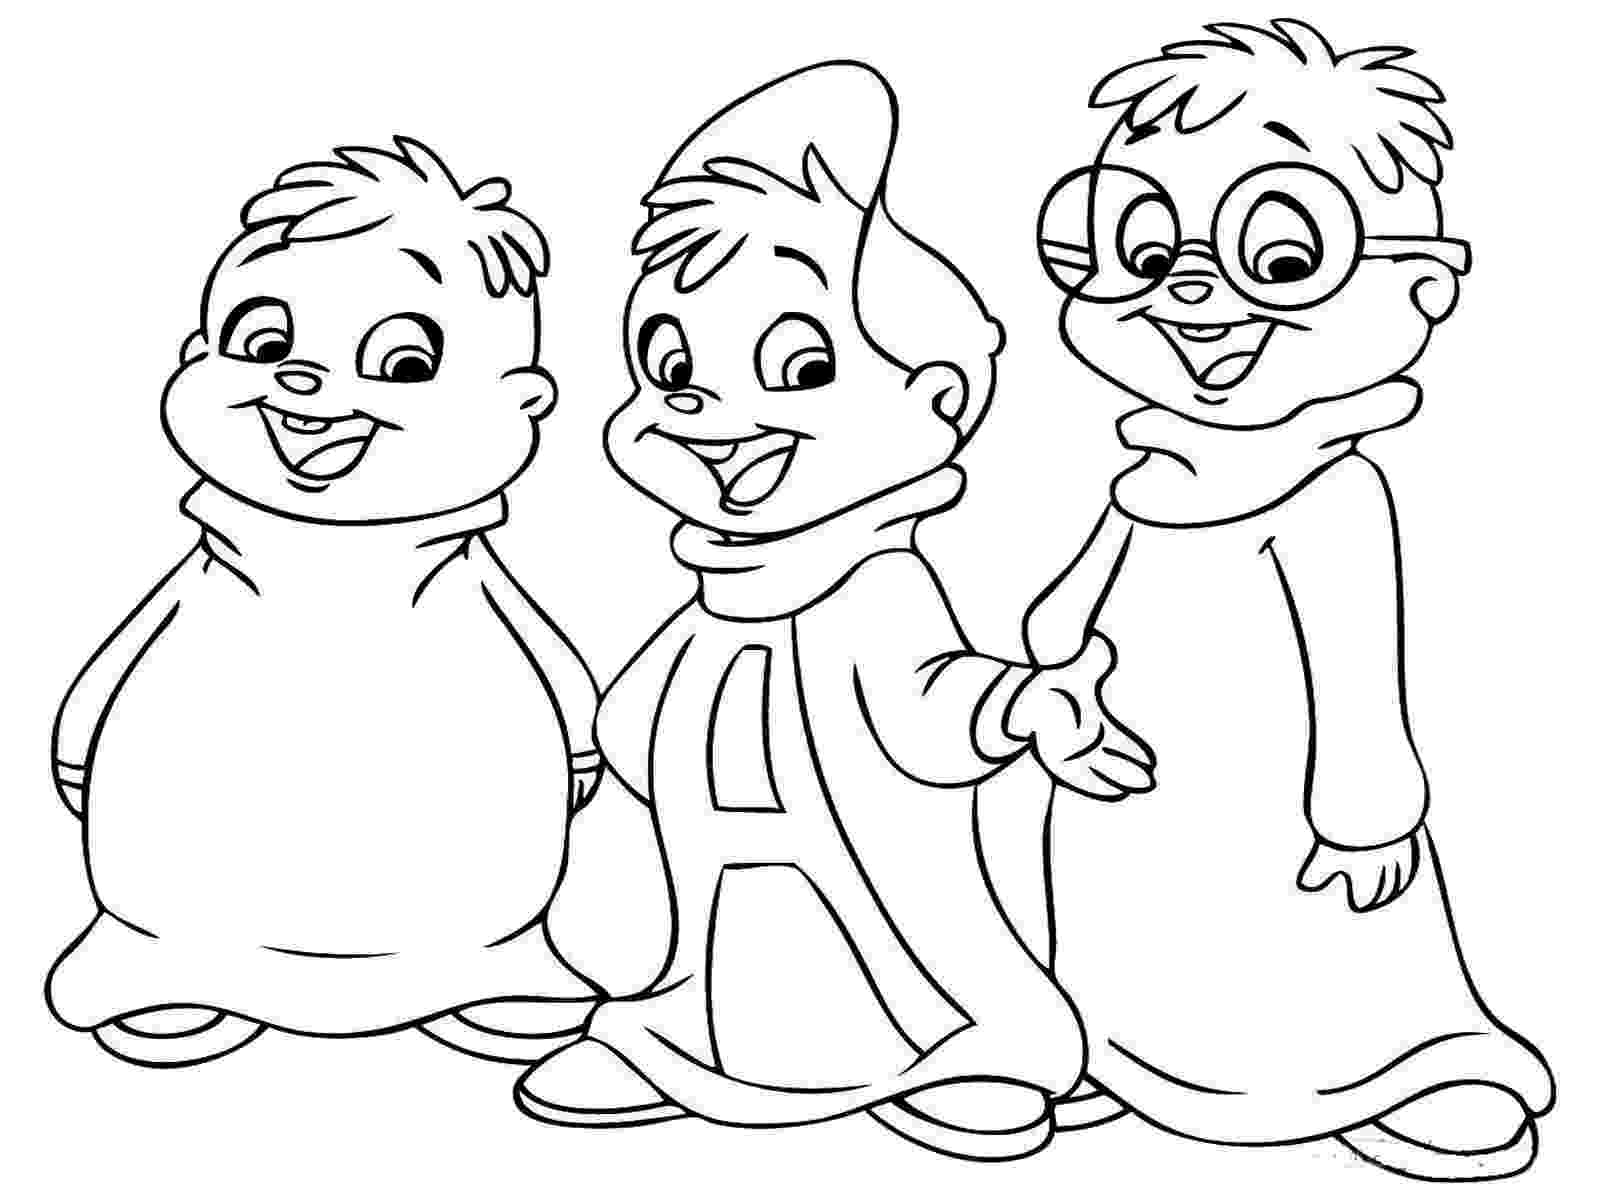 printable coloring pages for boys printable coloring pages for boys alvin and the pages for printable boys coloring